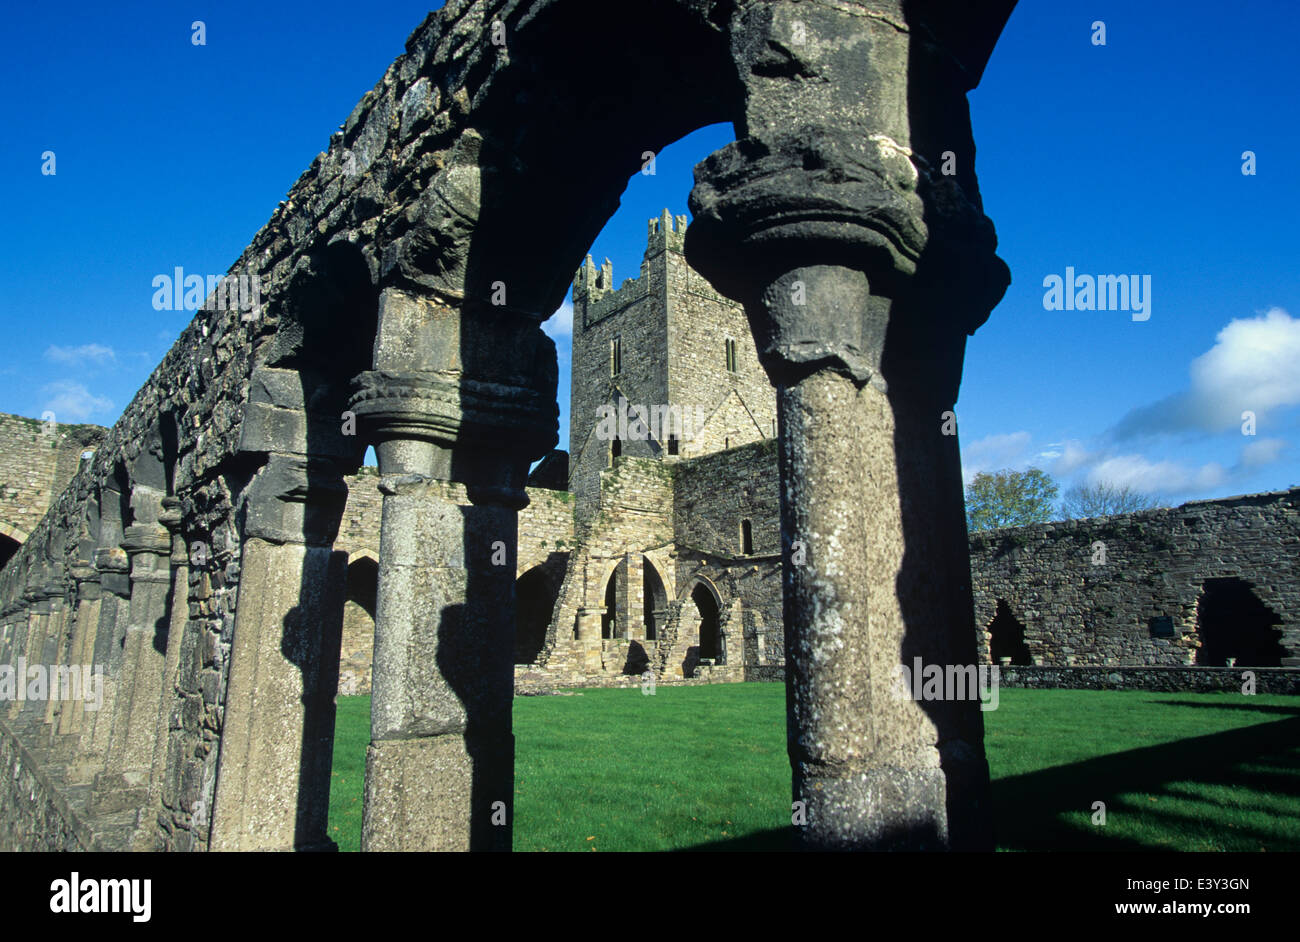 Jarpoint Abbey, circa 1135, is the most complete of the early medieval Abbeys, County Kilkenny, Ireland. - Stock Image